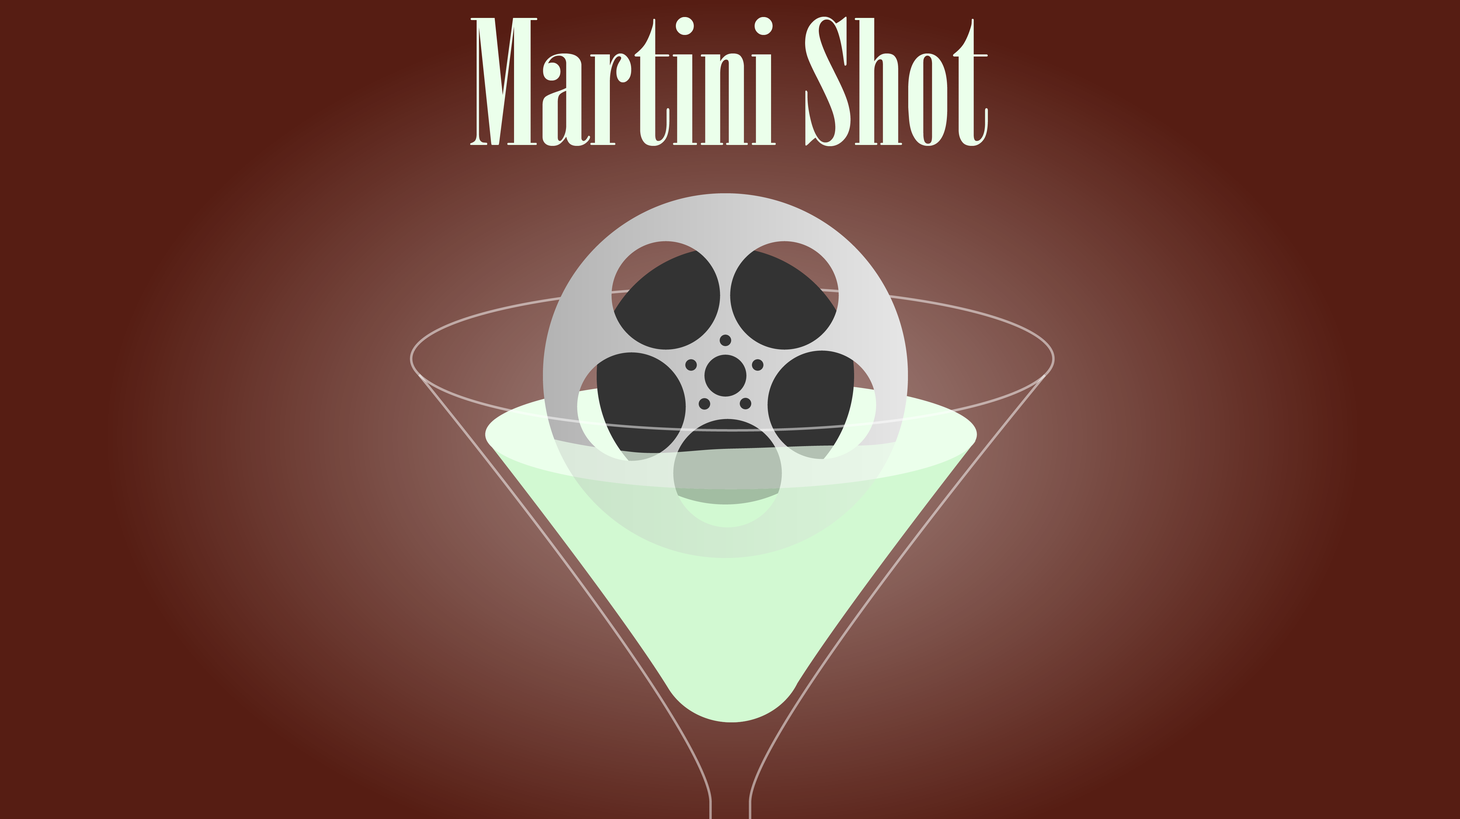 This is Rob Long and on today's Martini Shot I give you the secret code to undermining every writer in your life. Just listen to whatever idea they're working on and say cheerfully, Oh yeah, they did that.